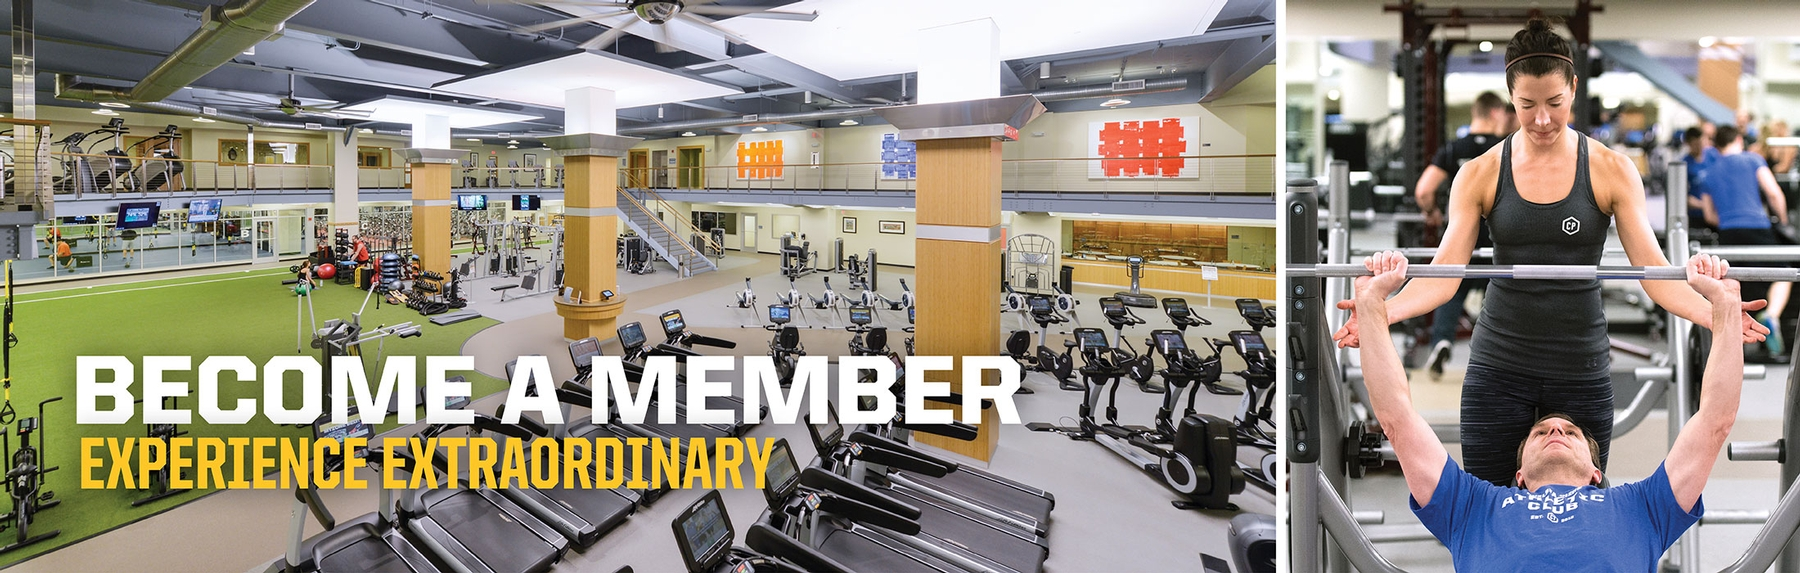 Fitness - Become a Member